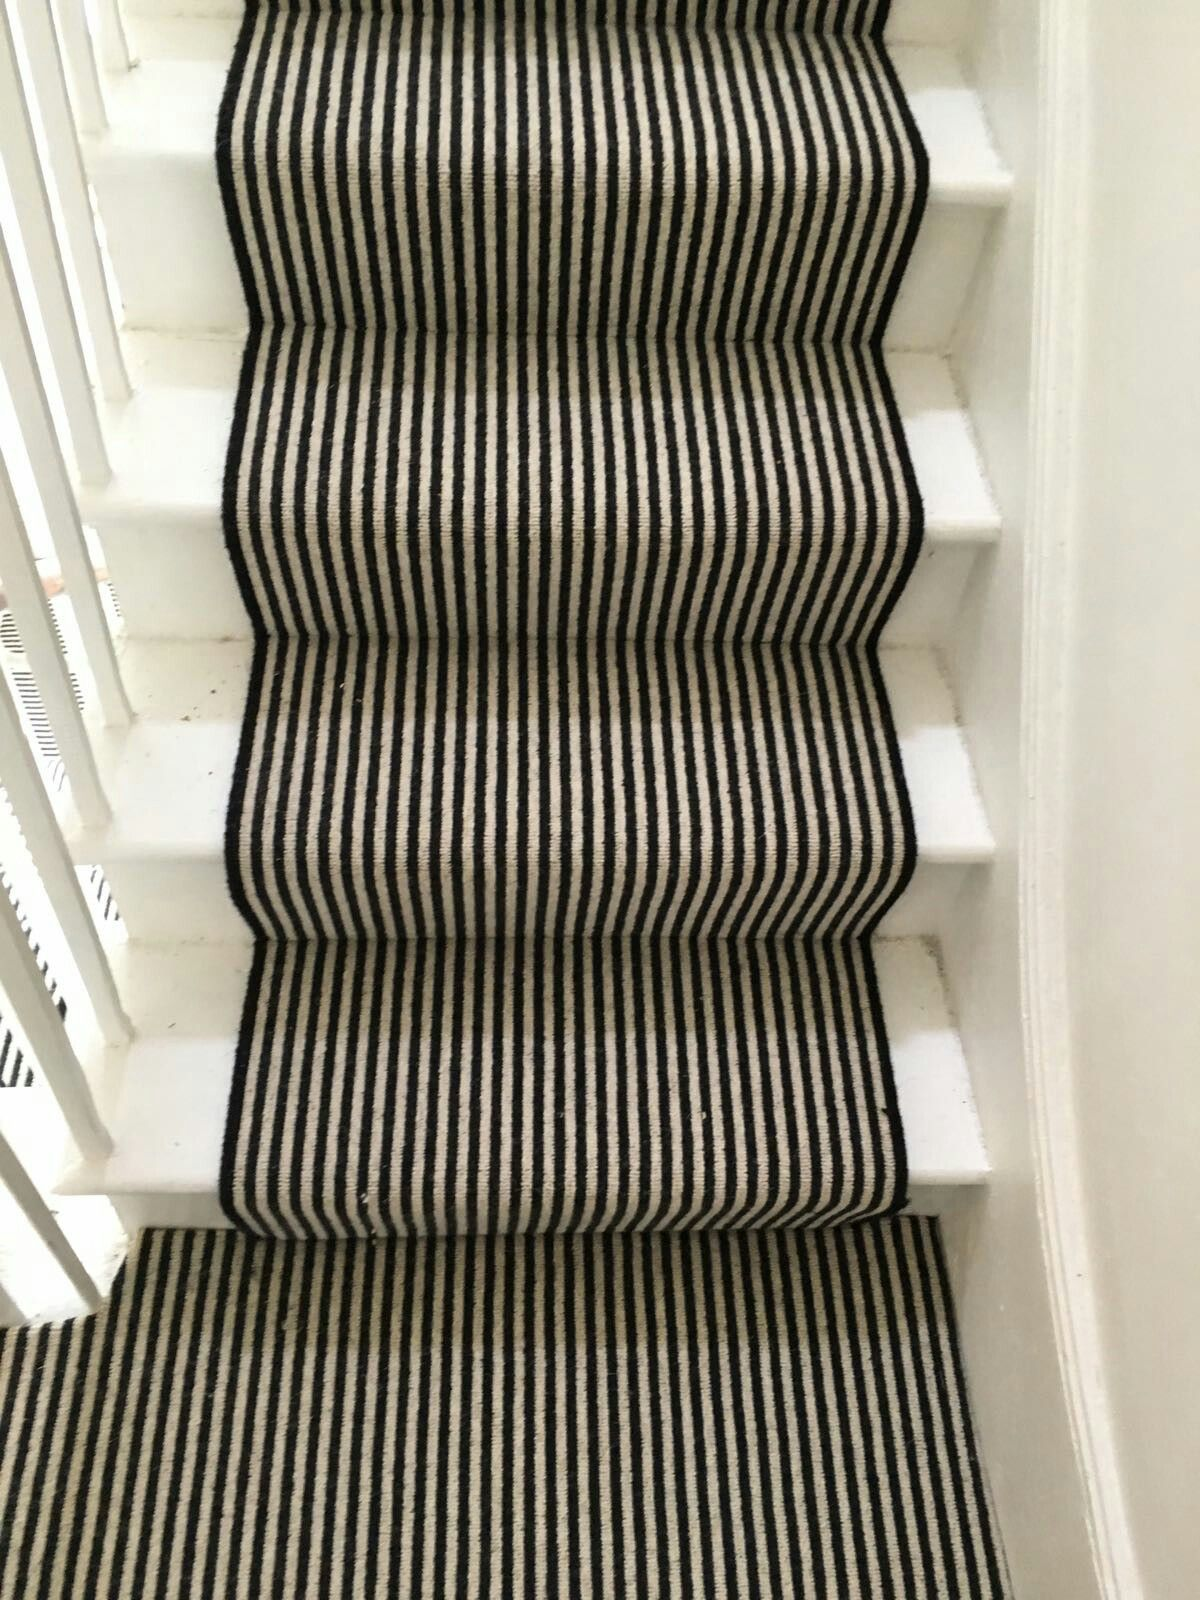 Funky Black And White Stair Runner With Black Edges Fitted Onto White Wooden Stairs Carpet Stairs Stair Runner Carpet Black And White Stairs